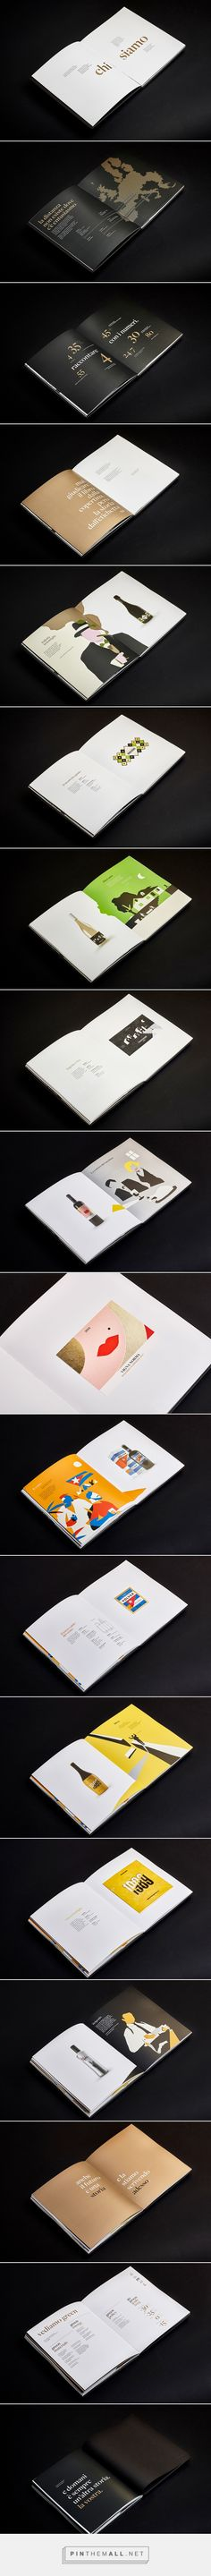 Stories in the bottle on Behance - created via https://pinthemall.net